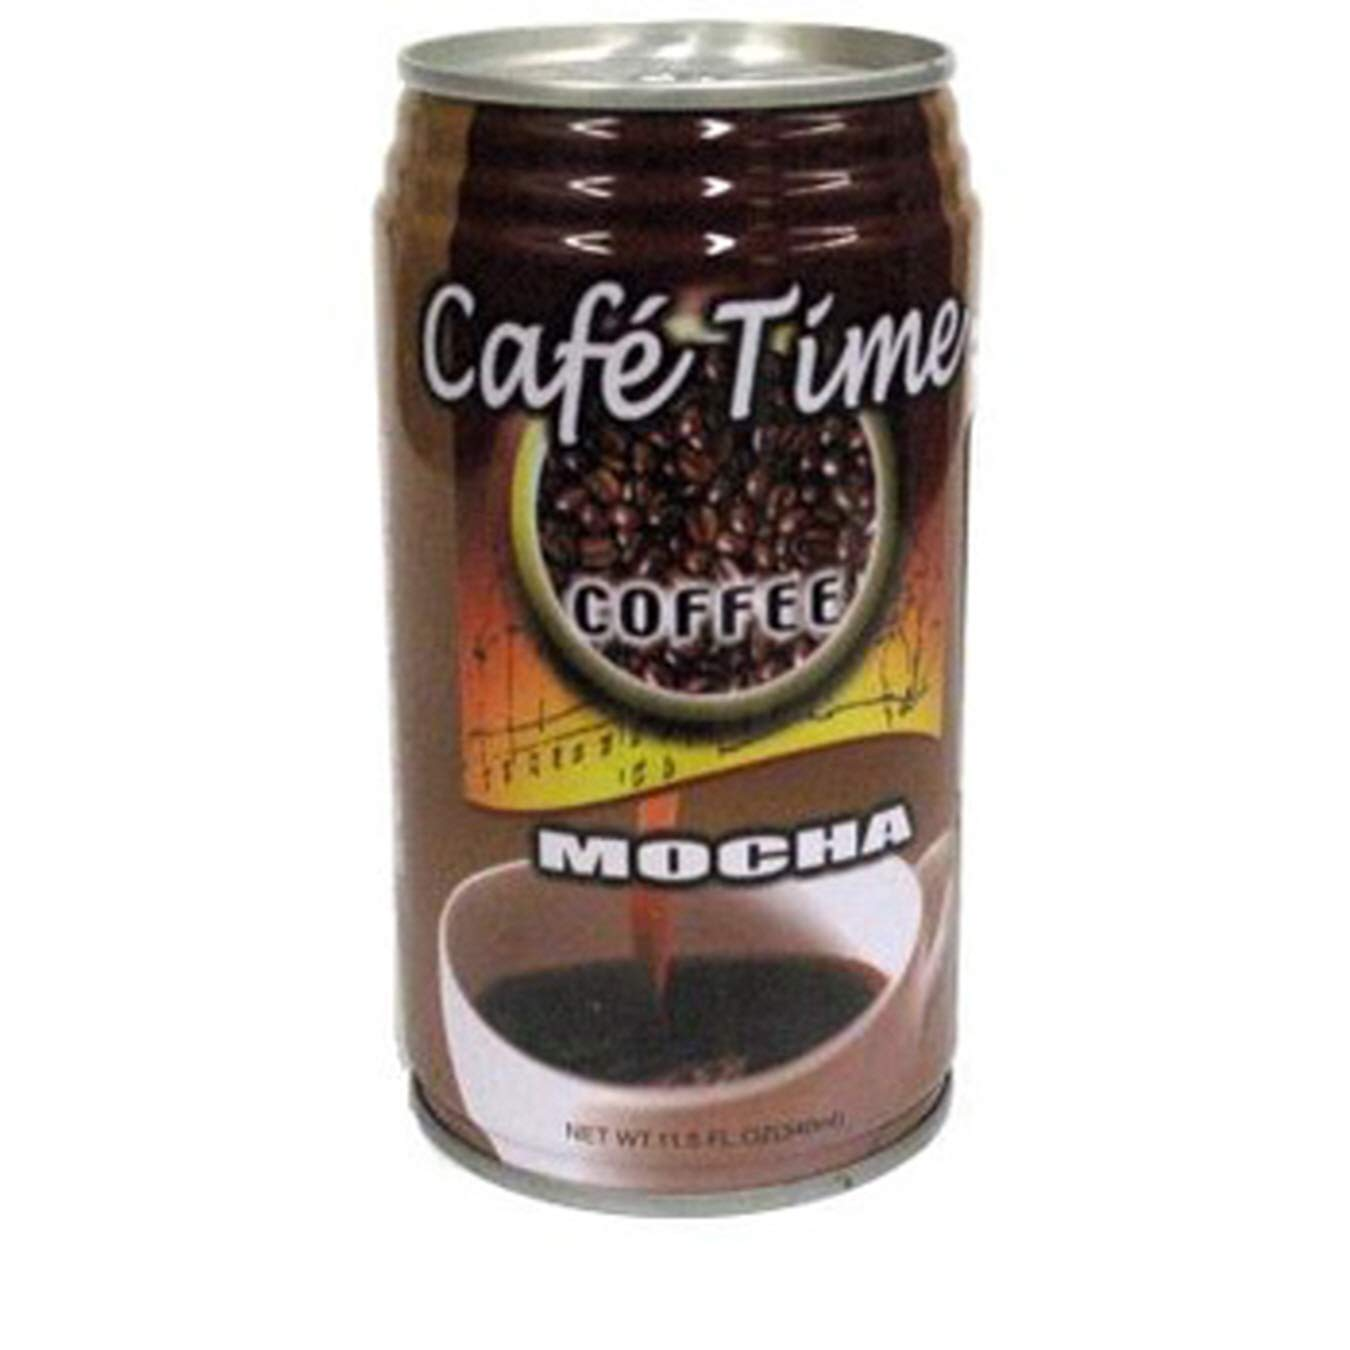 (Pack of 24) Café Time Coffee Drink Mocha, 11.5oz